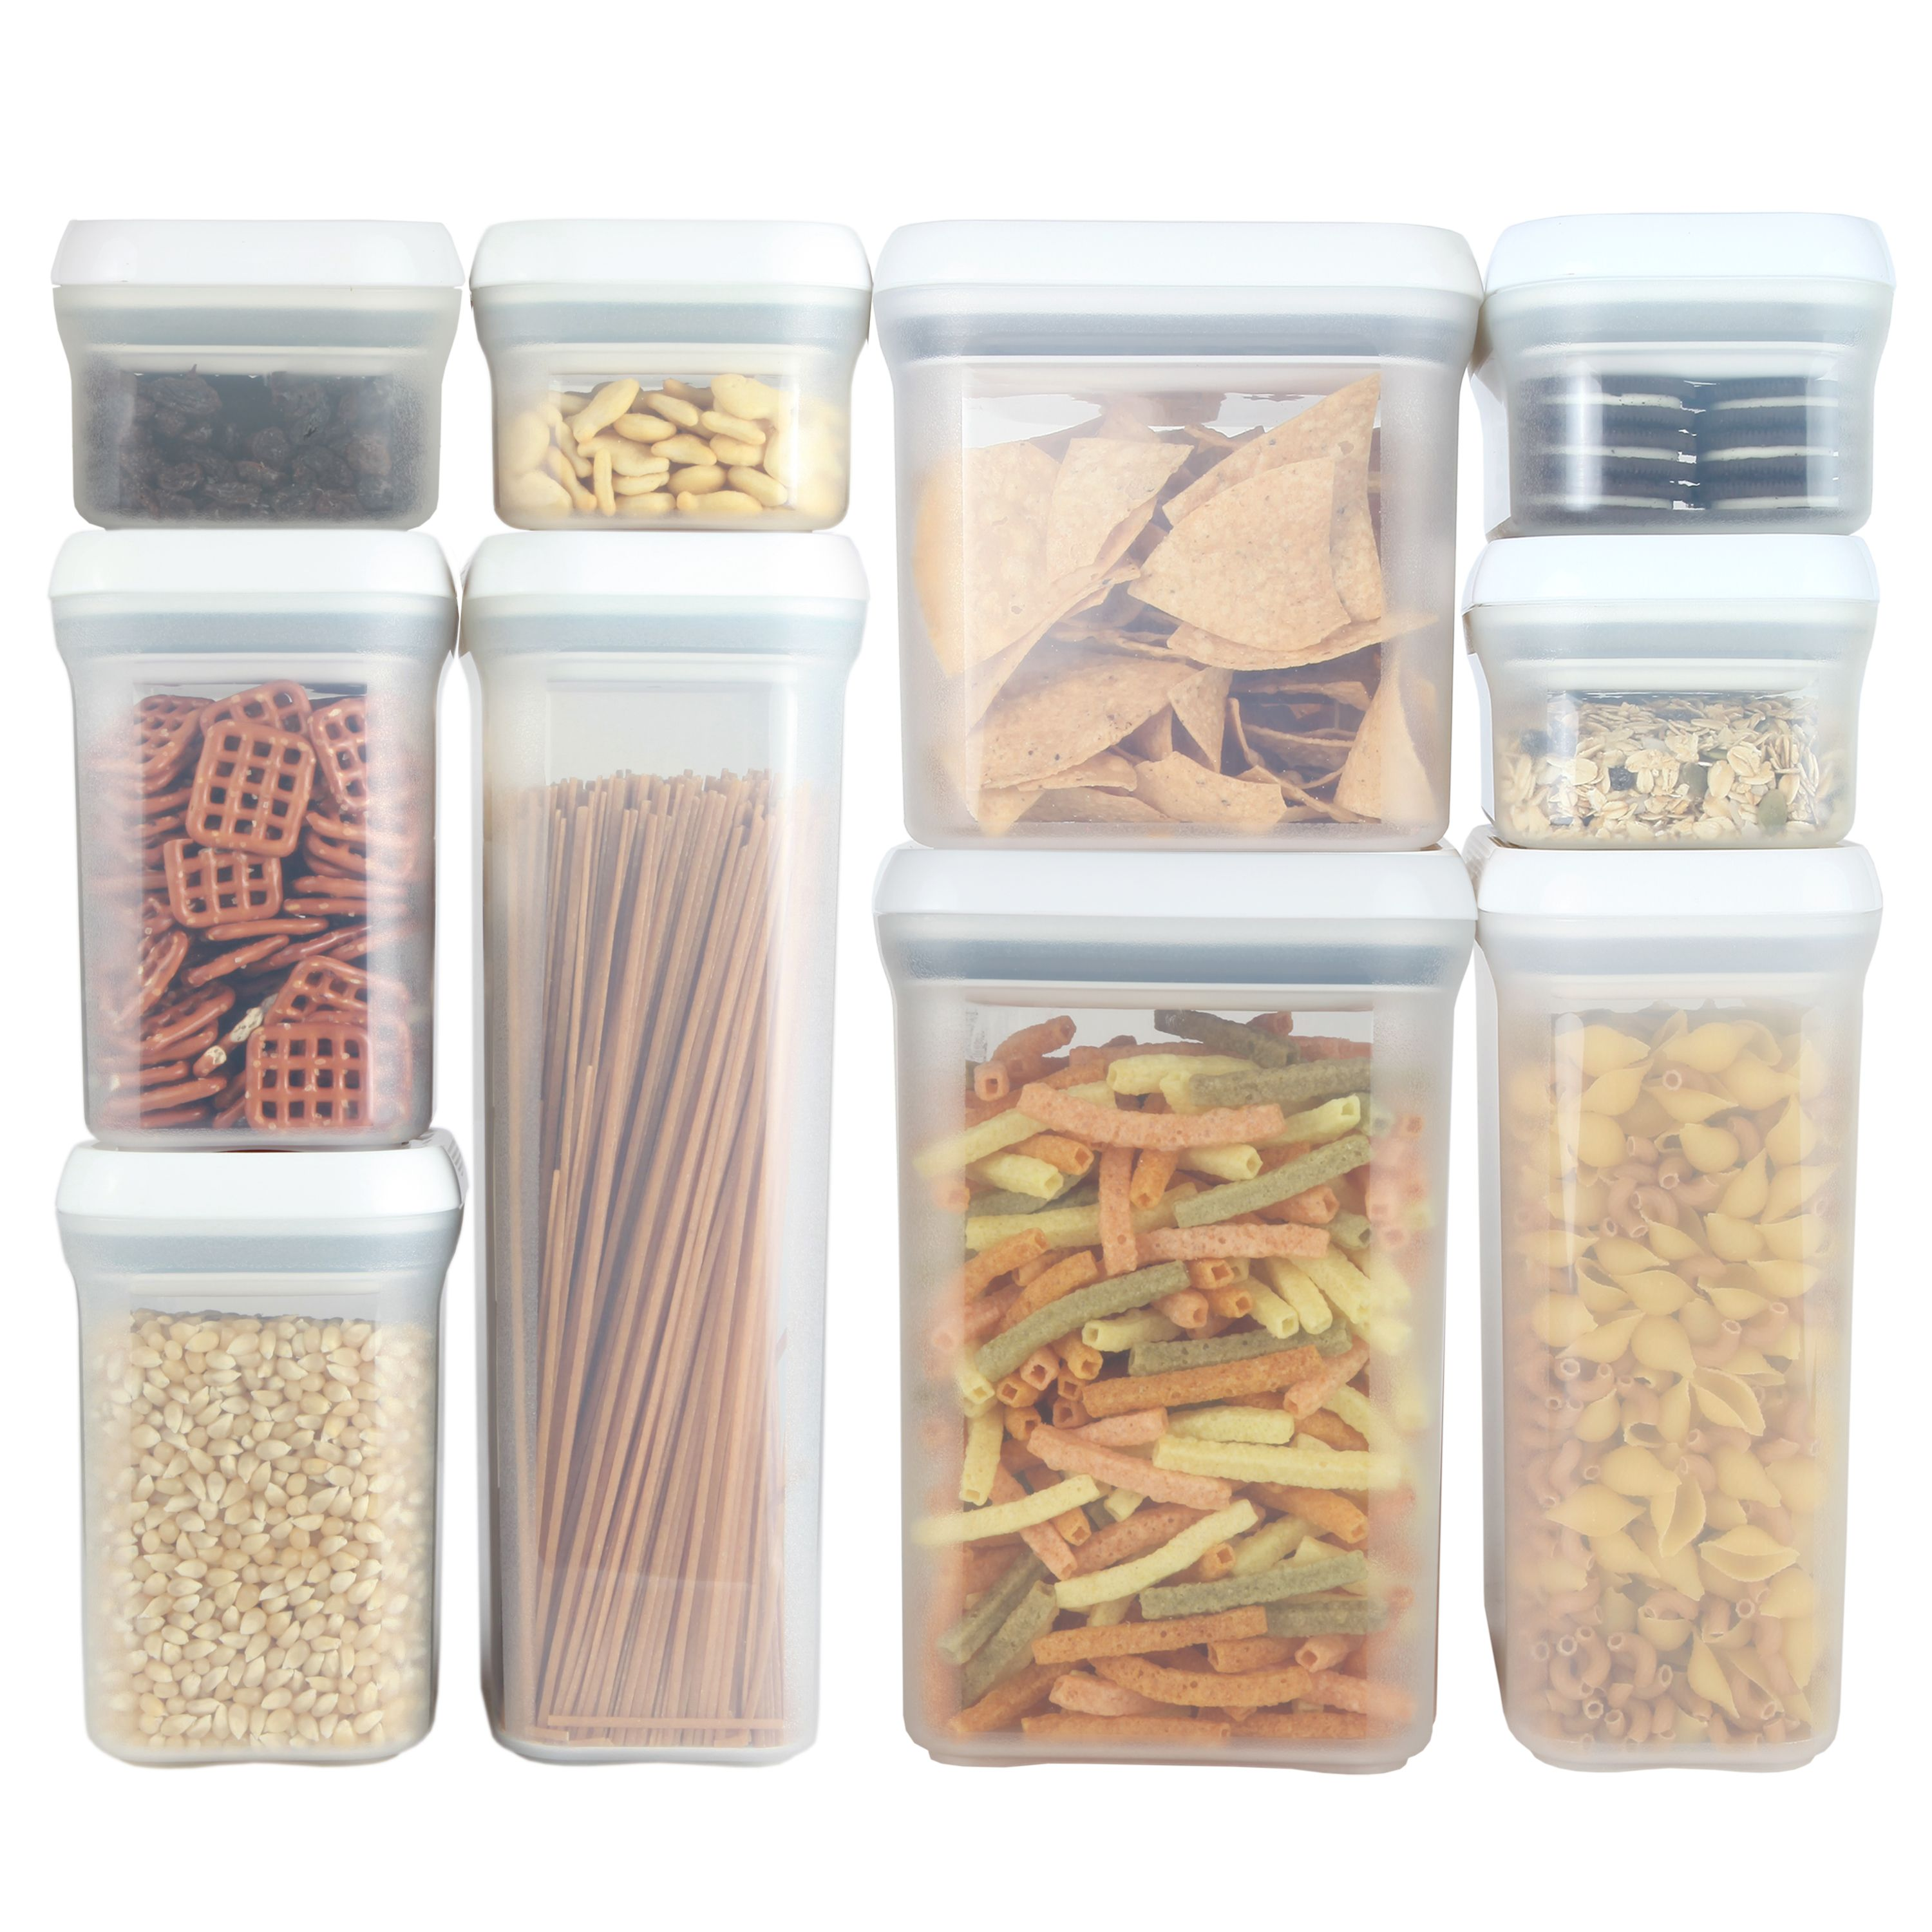 PERSIK Premium *SPIN & LOCK* Airtight Sealed Containers for Food and ...